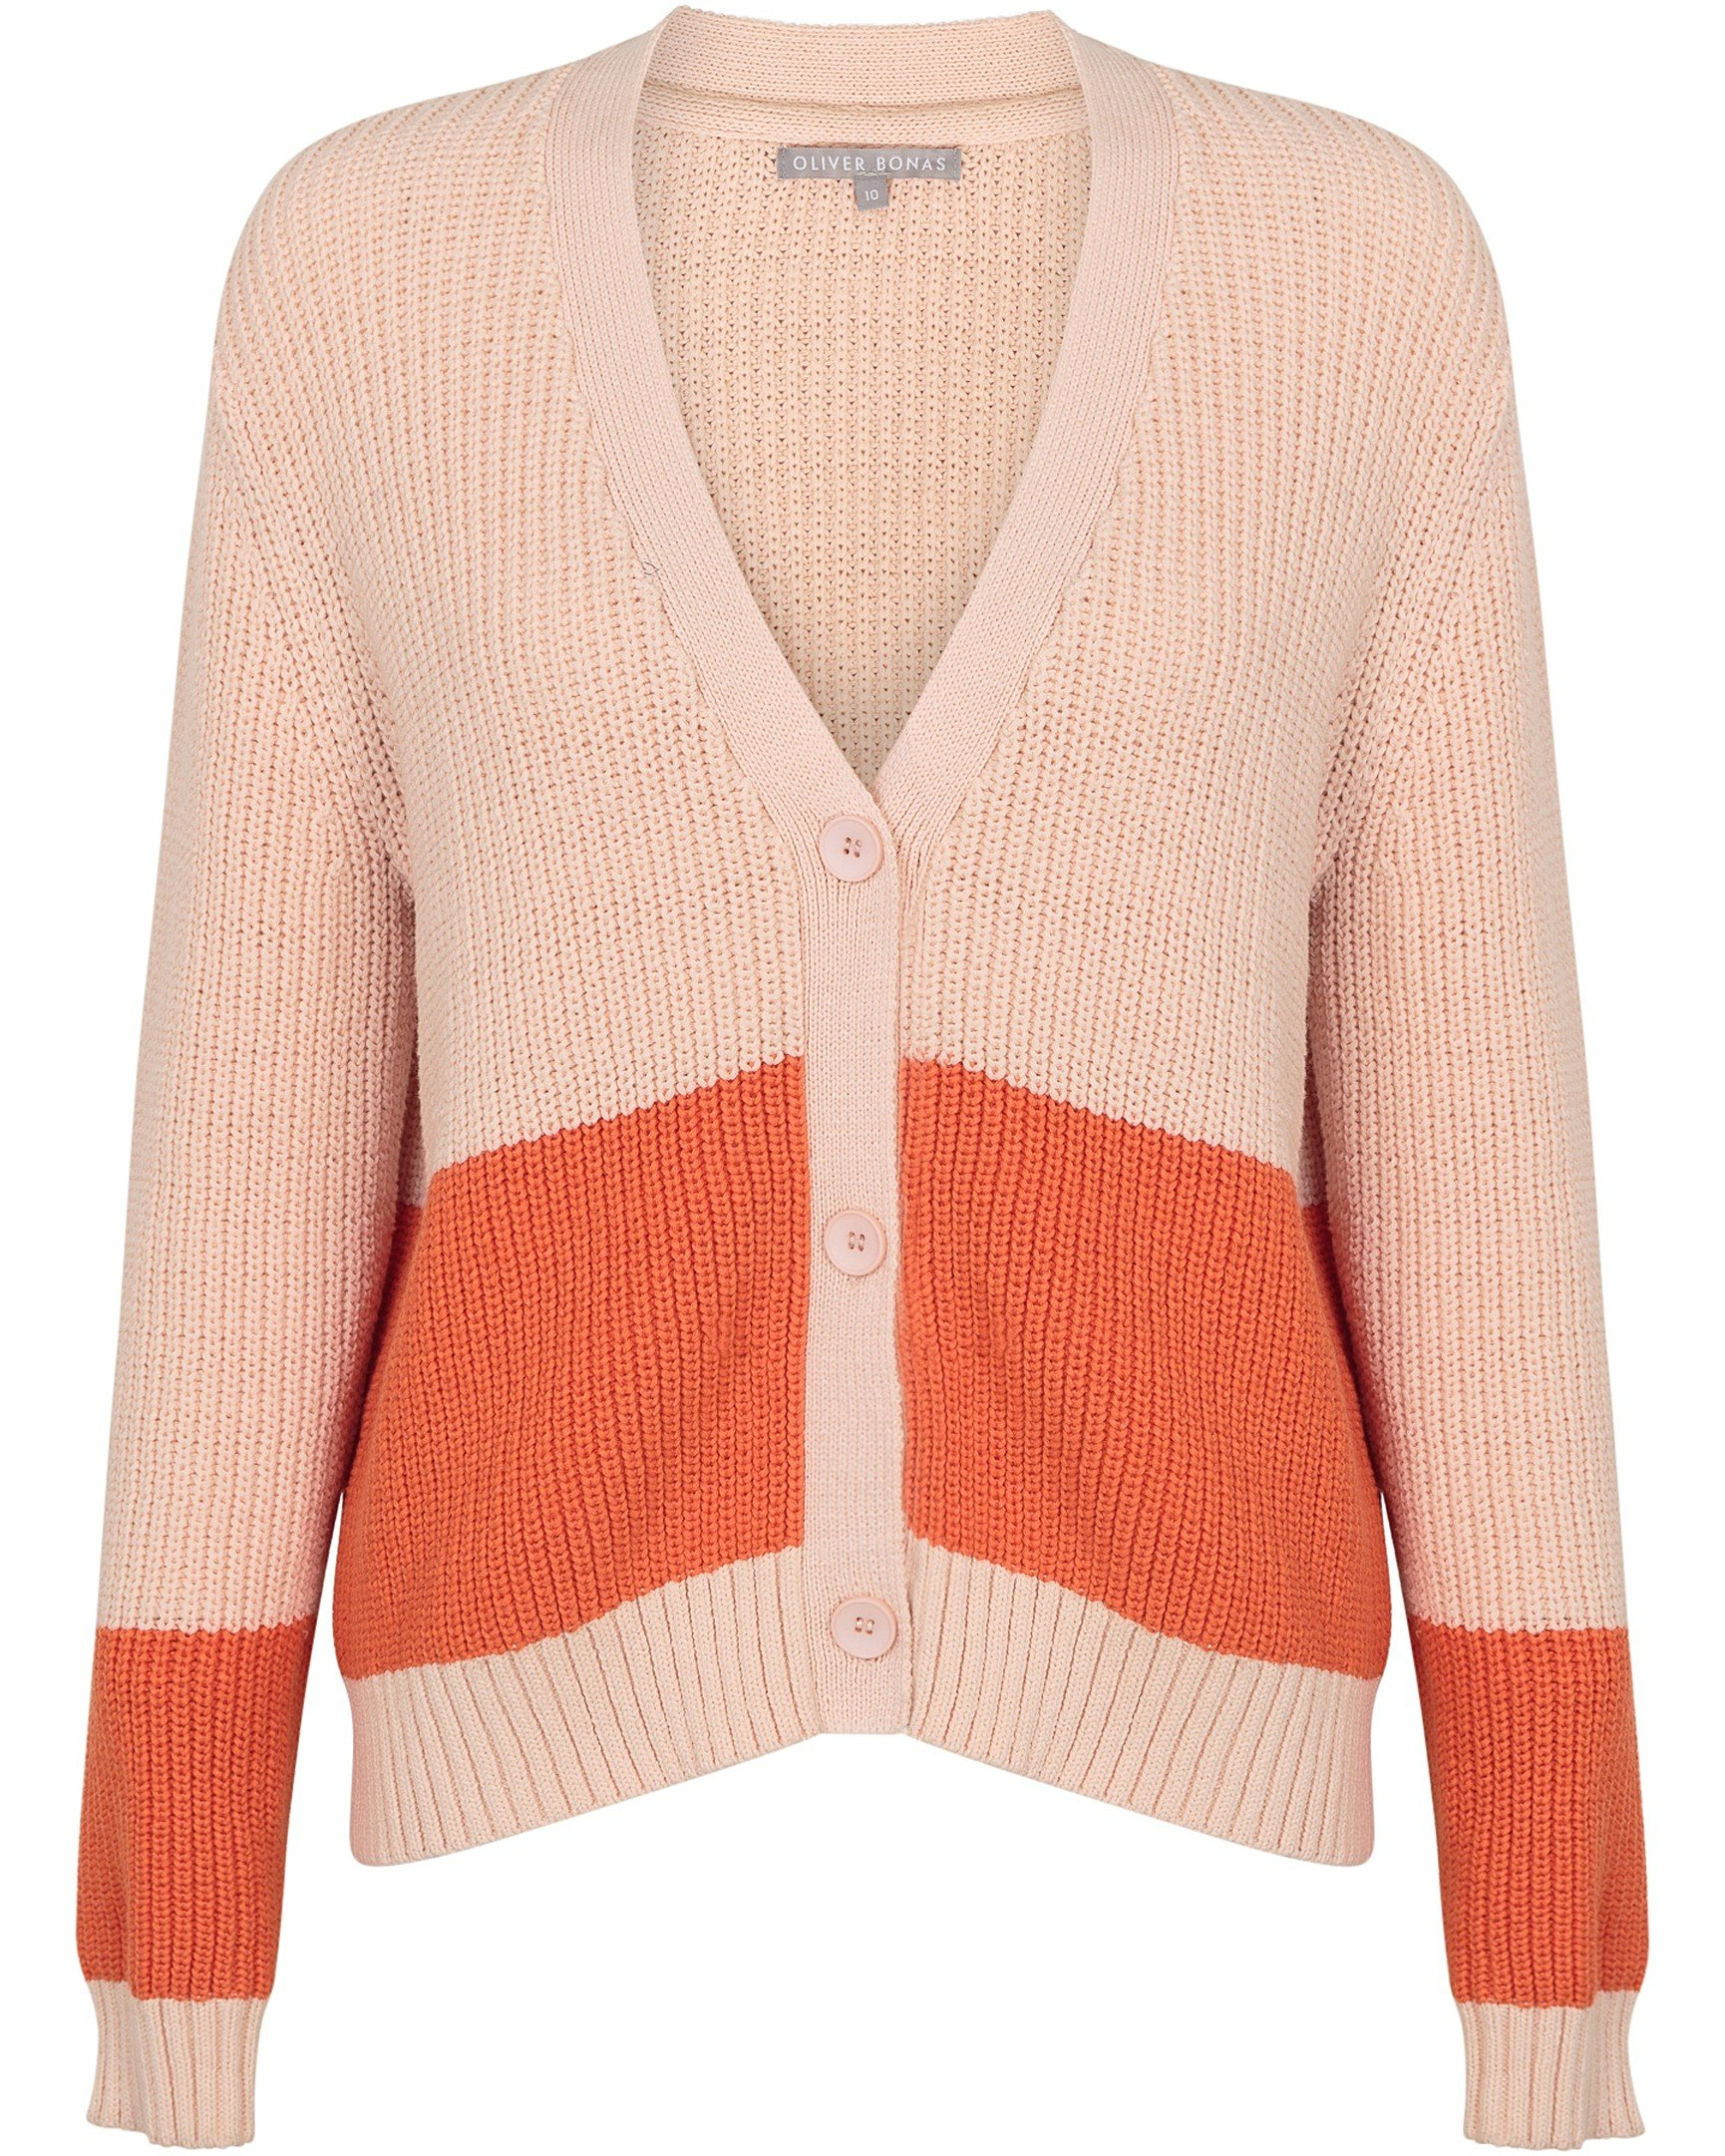 4f25aedee0c67 Wayfarer Peach   Orange Cardigan